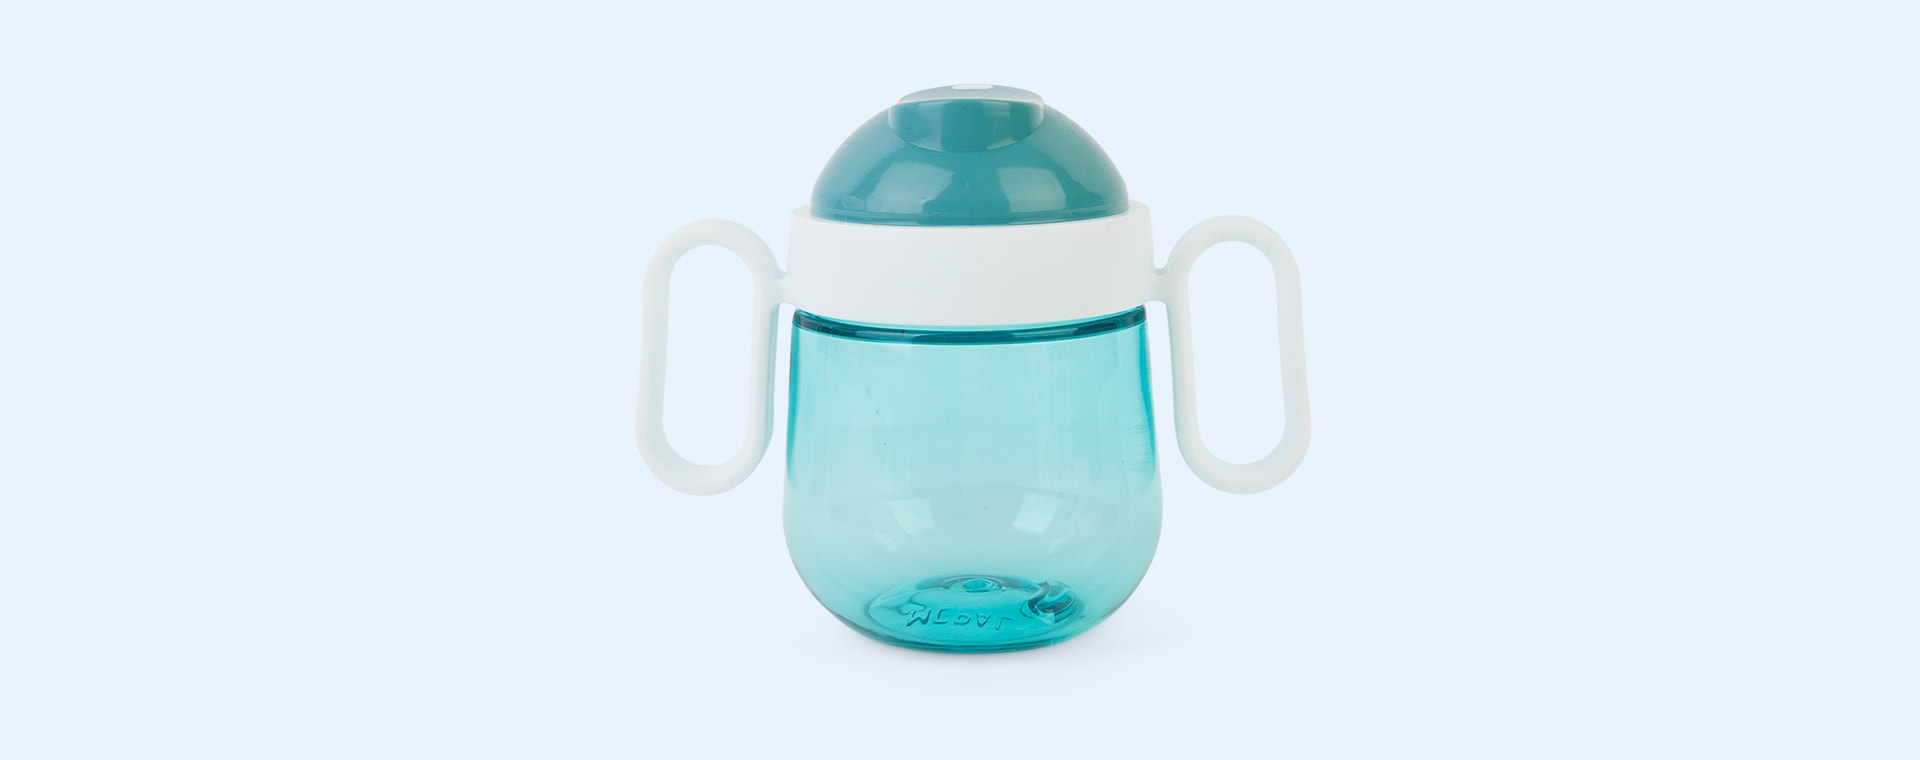 Deep Turquoise Mepal Non-Spill Sippy Cup Mio